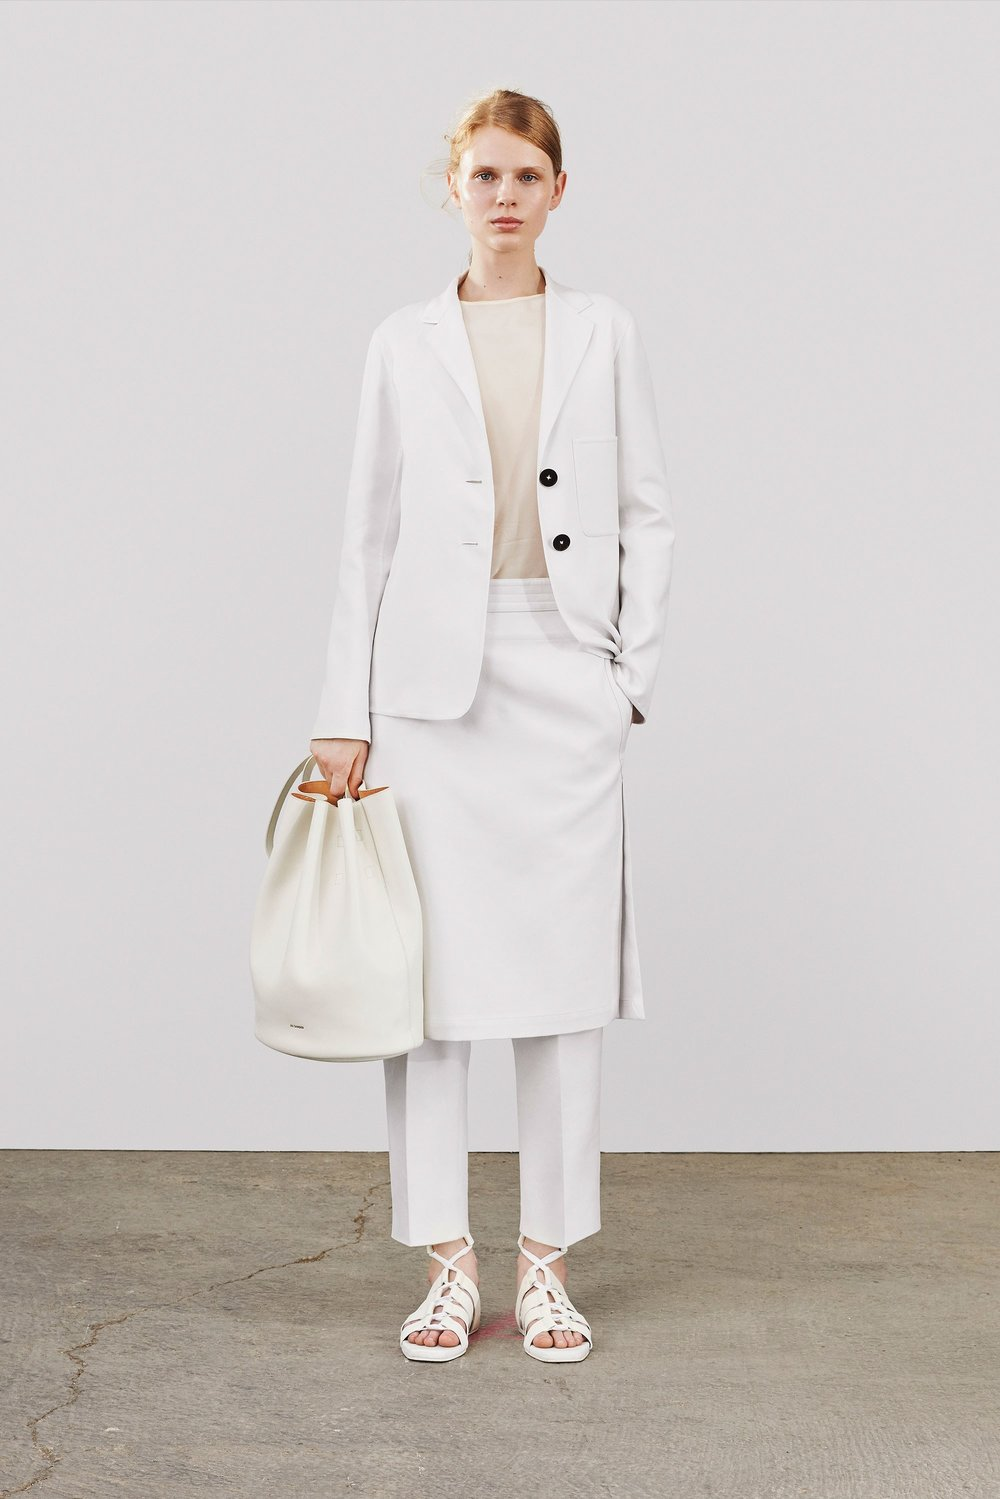 37-Jil-Sander-Resort-18.jpg